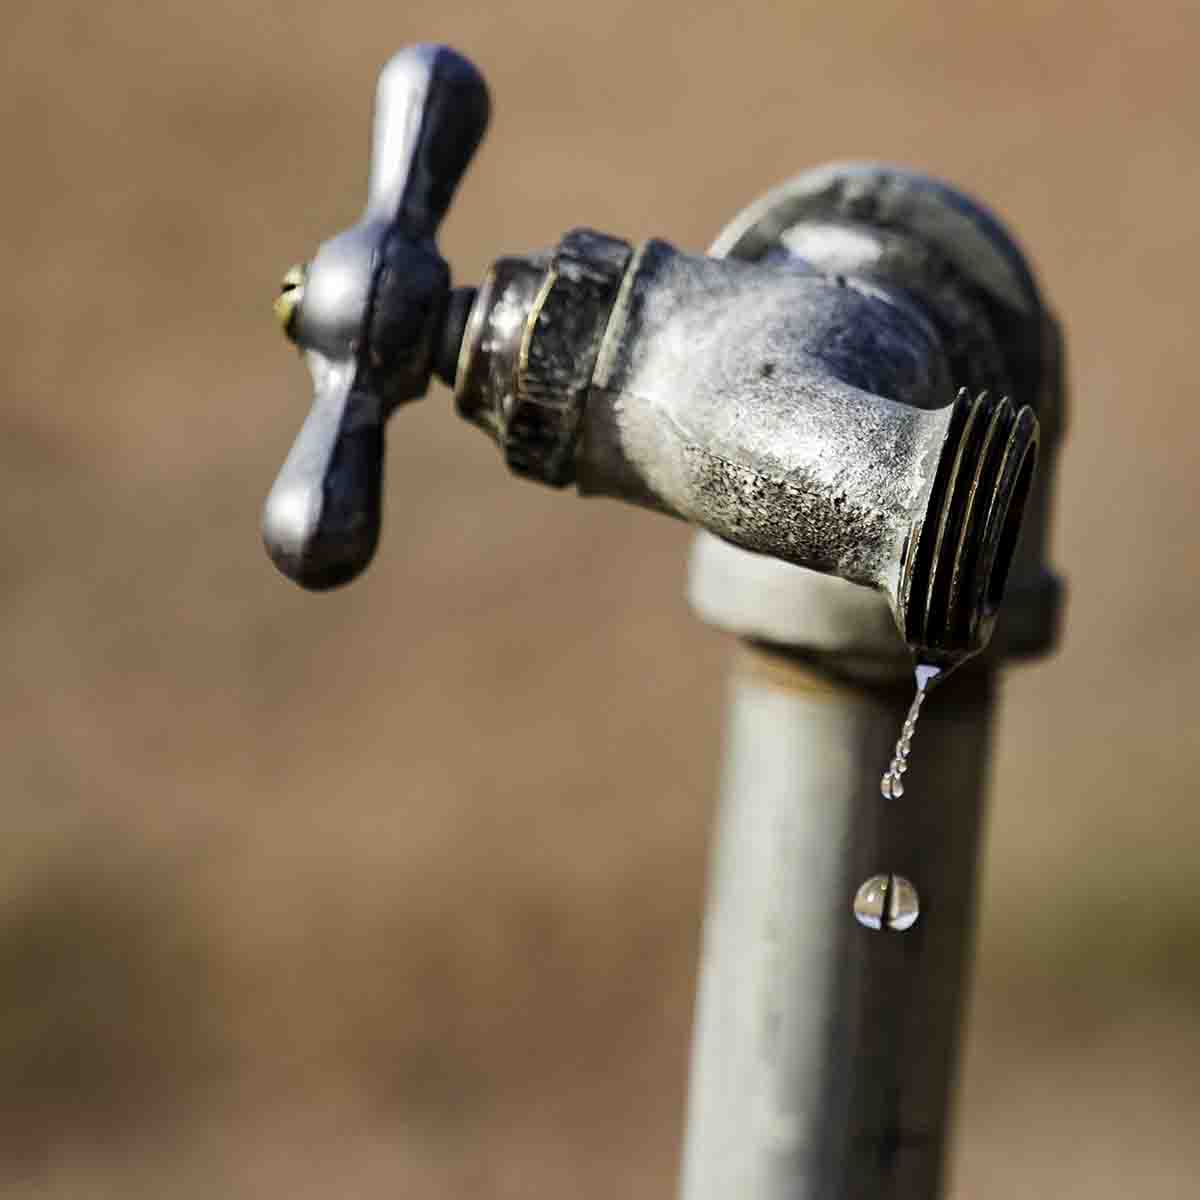 How To Keep Outside Faucet From Freezing  Ask the Plumber Blog